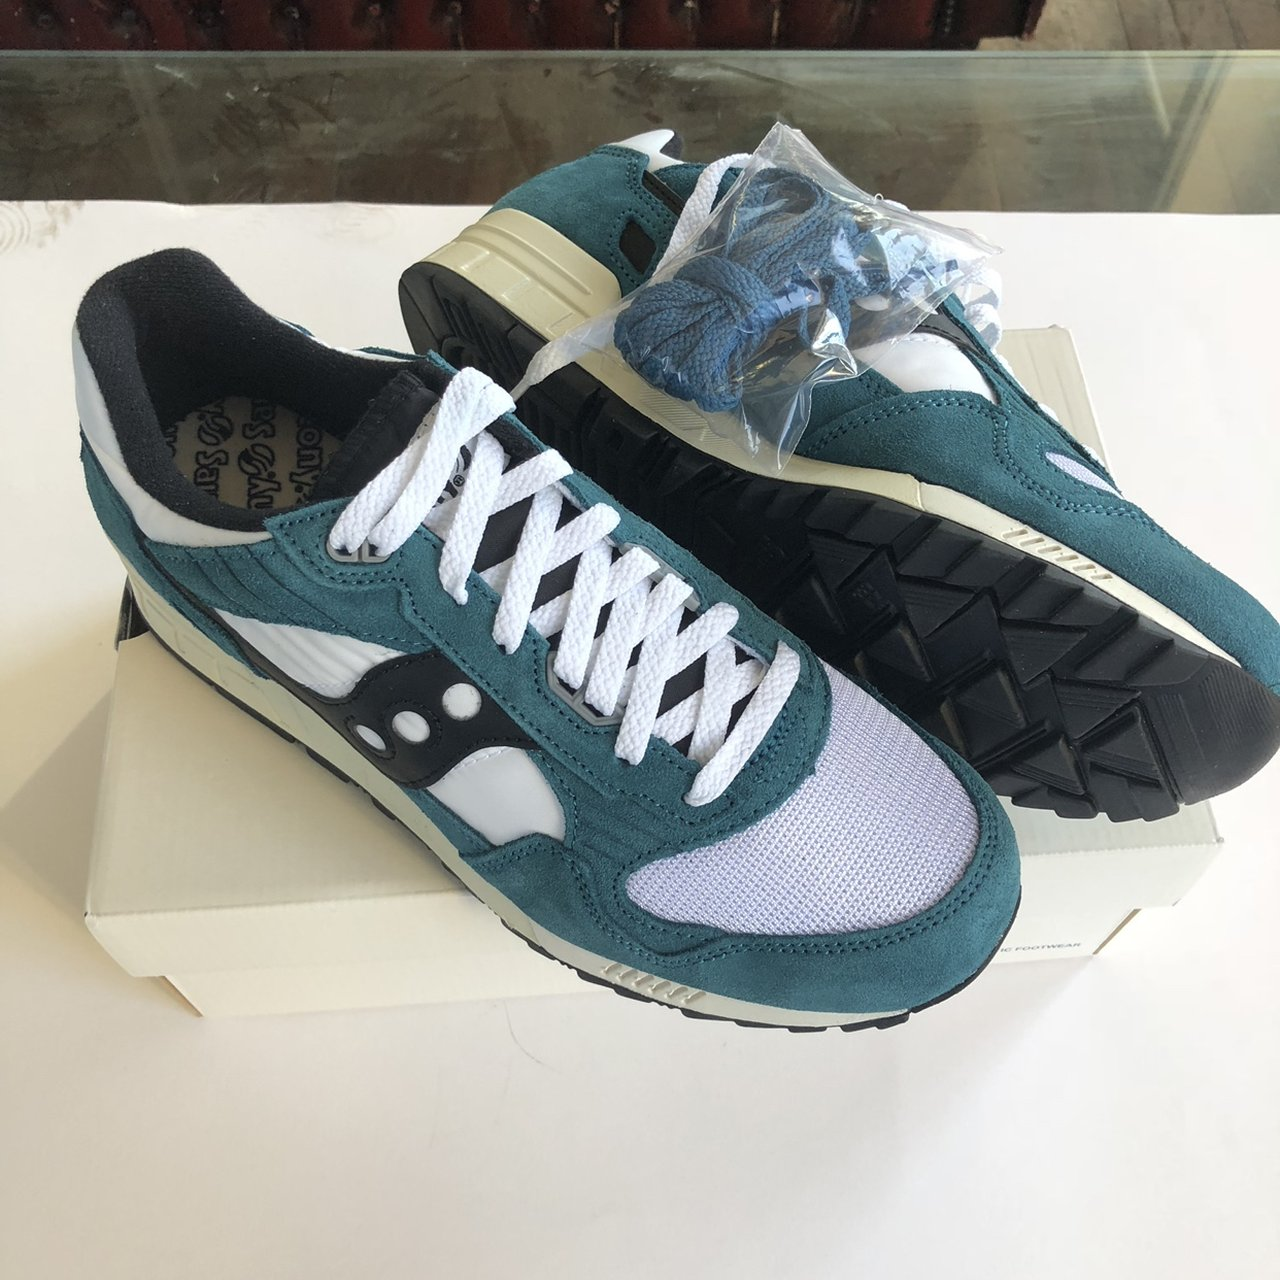 9c9ae093ead4 Saucony Shadow 5000 Vintage. Brand new in box with spare - Depop